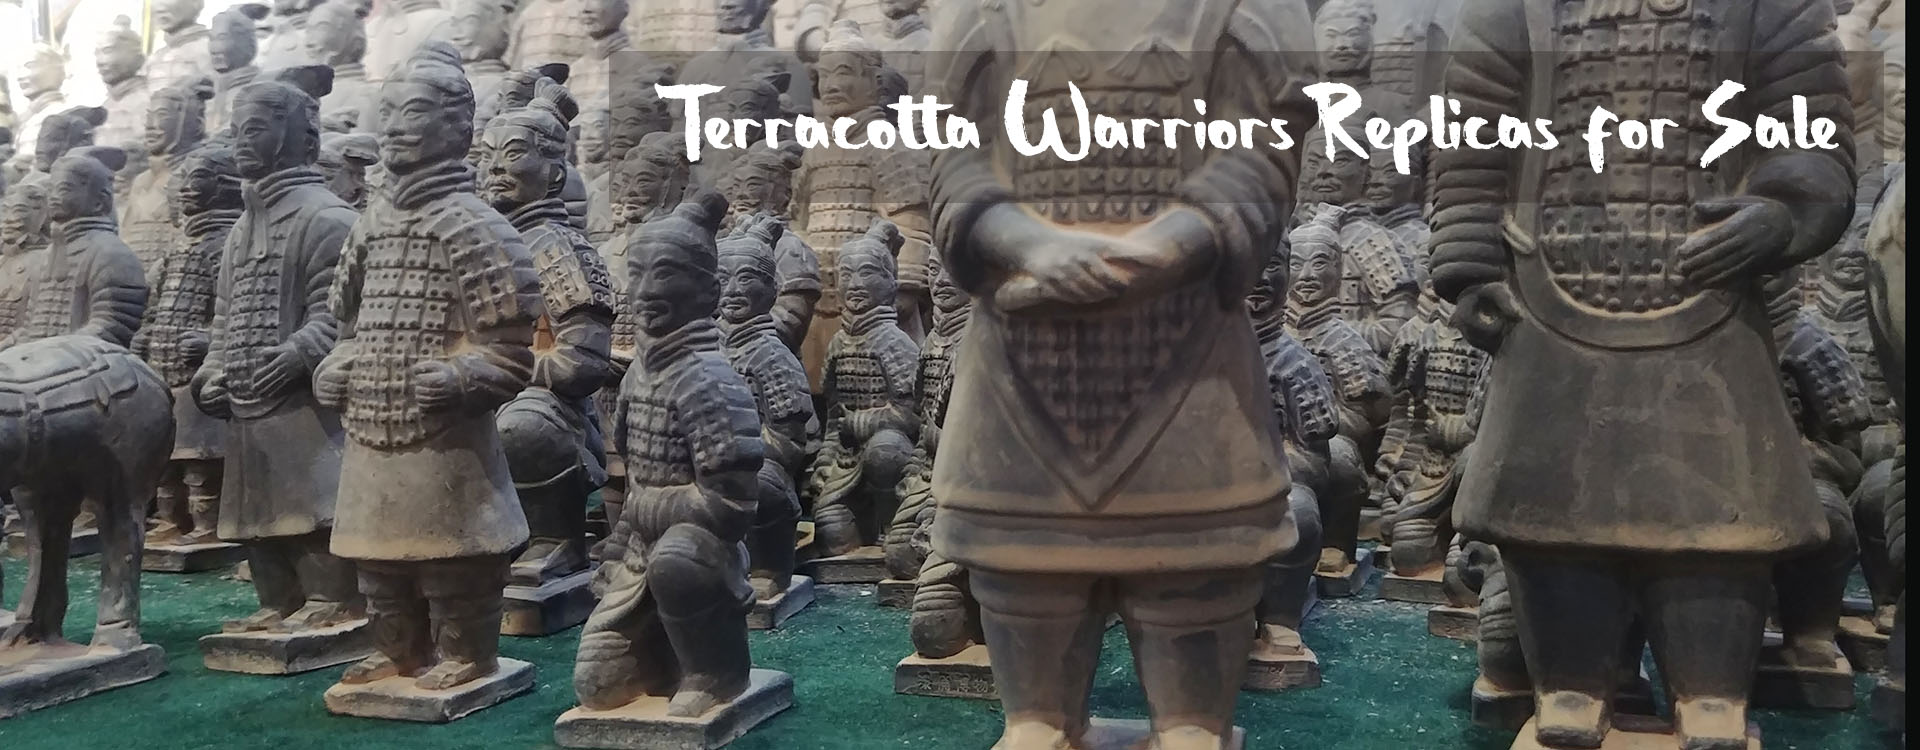 Terracotta Warriors Army Soldiers for Sale